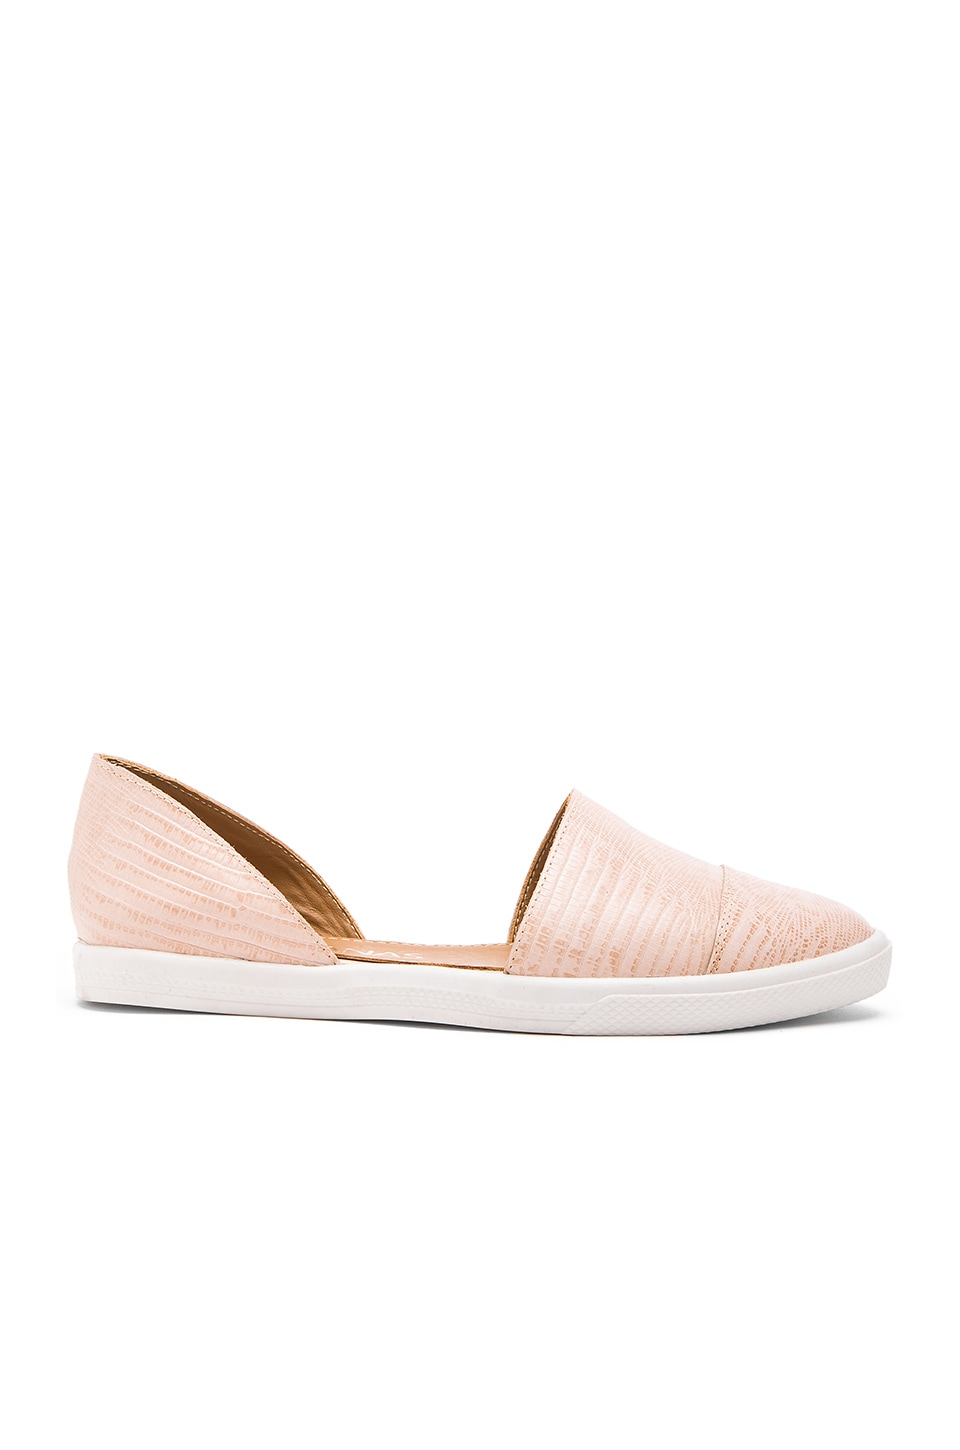 Kaanas St. Barts D'Orsay in Blush